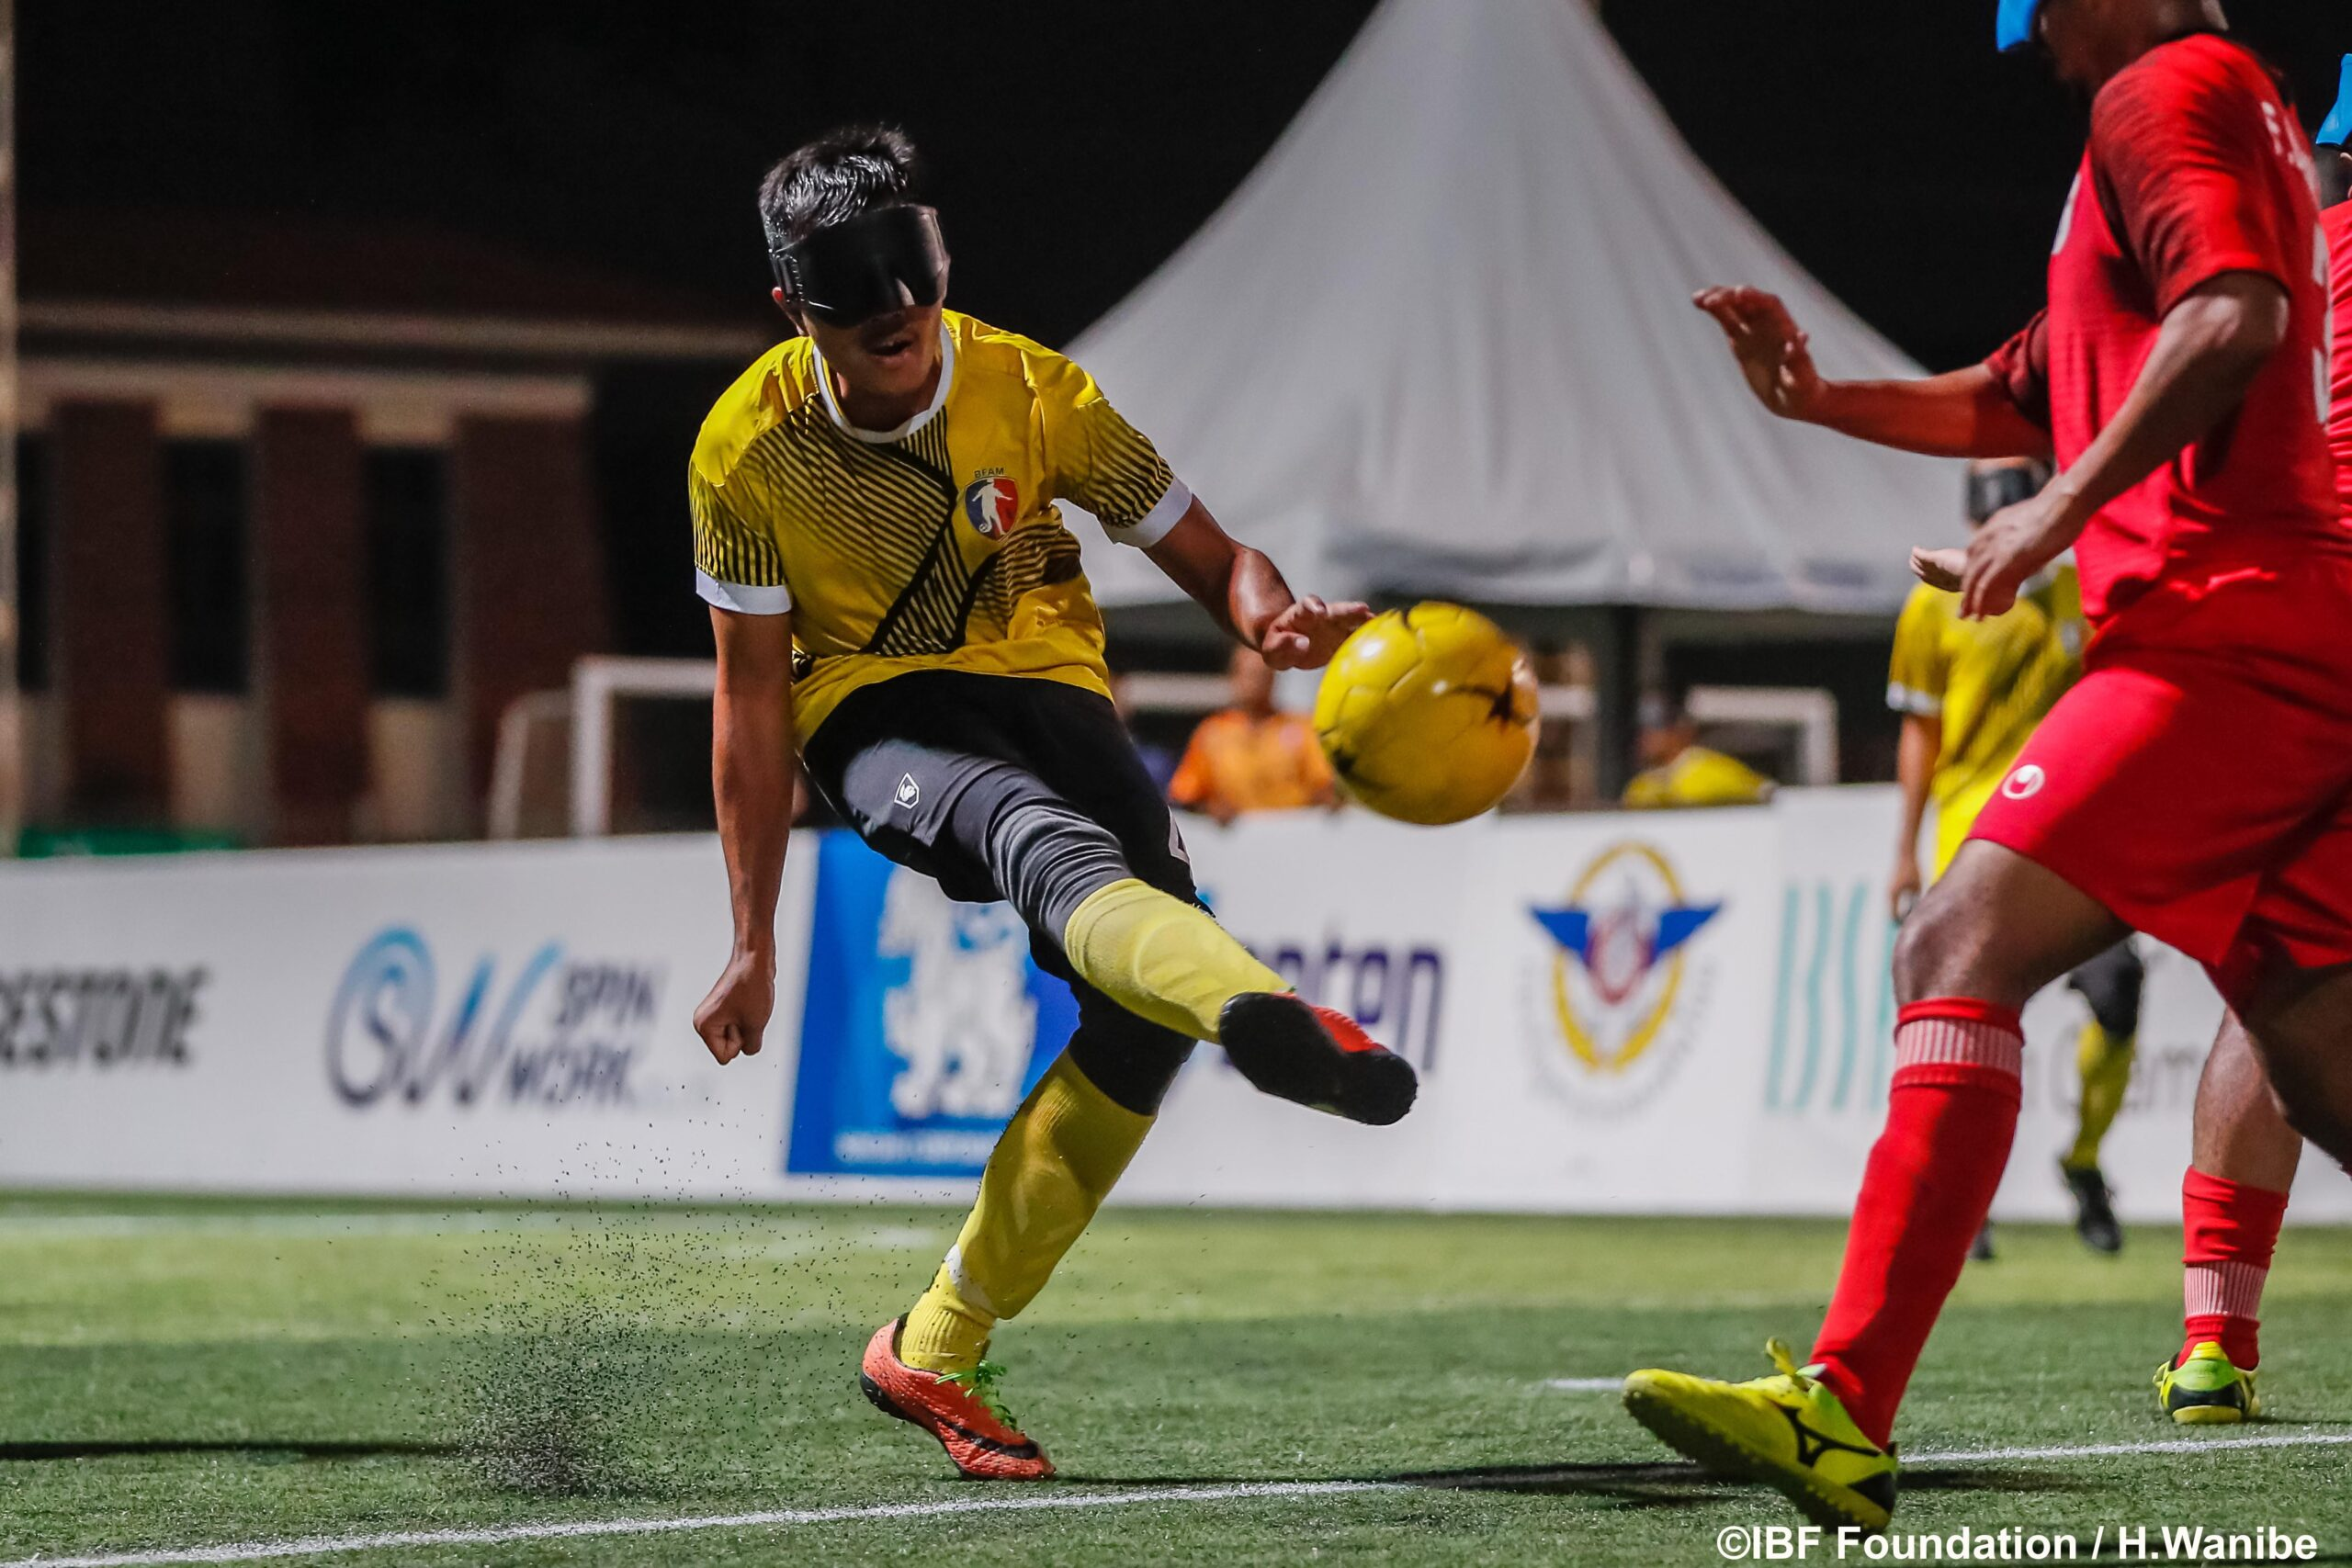 A blind football player strikes the ball into the air